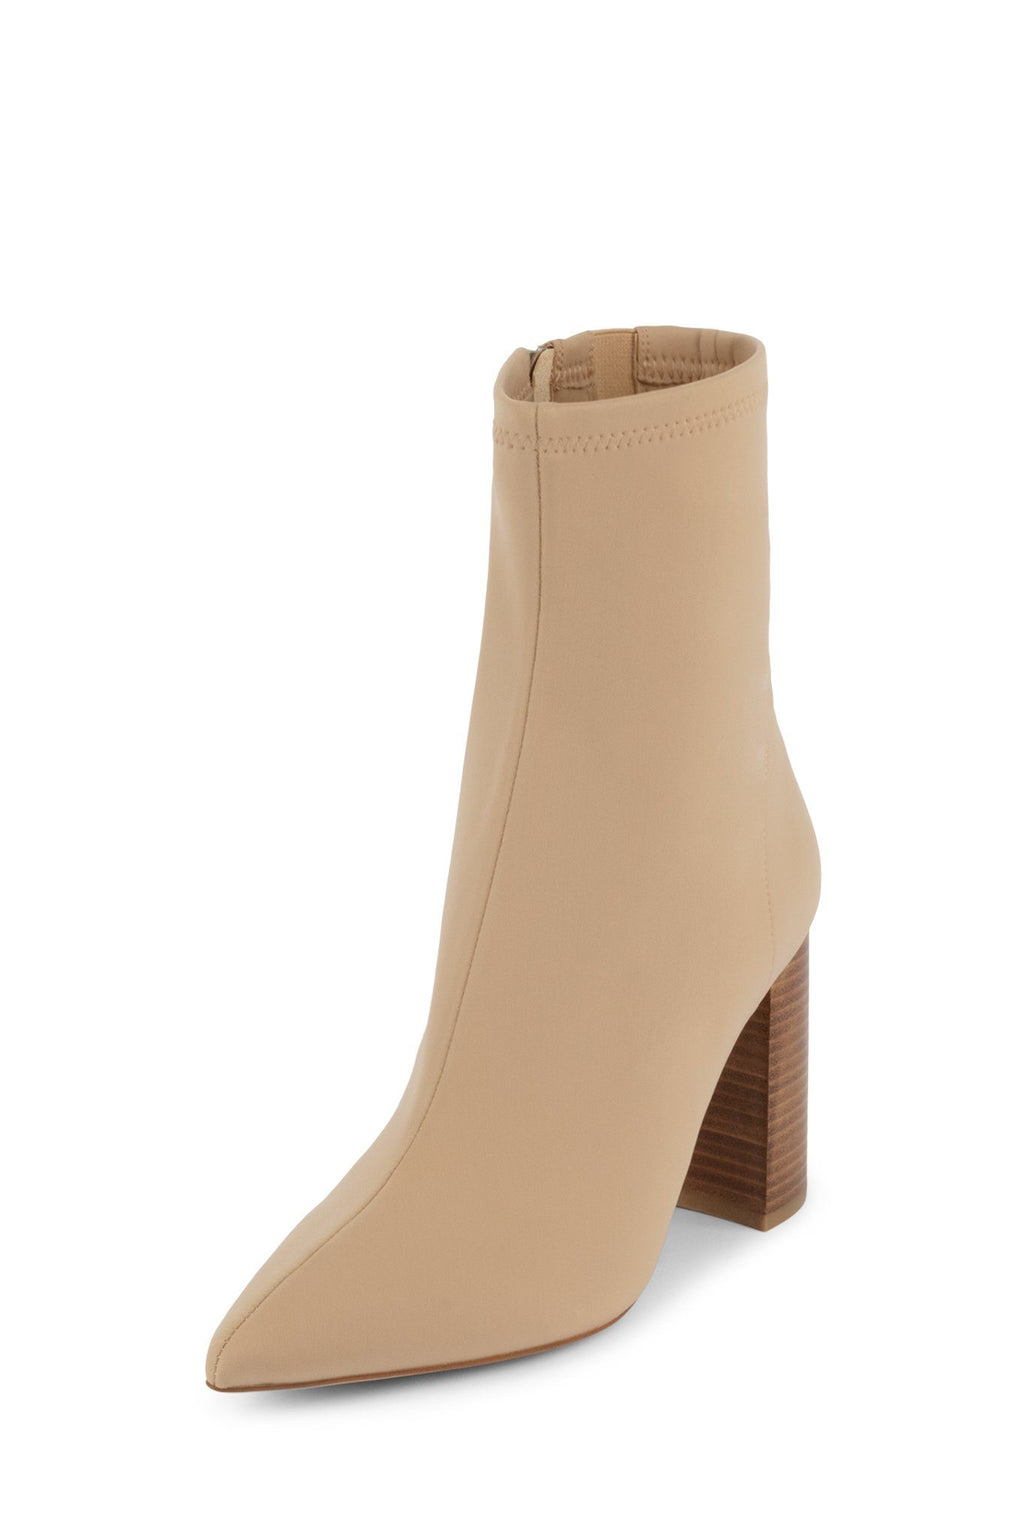 SIREN-3 Heeled Boot ST